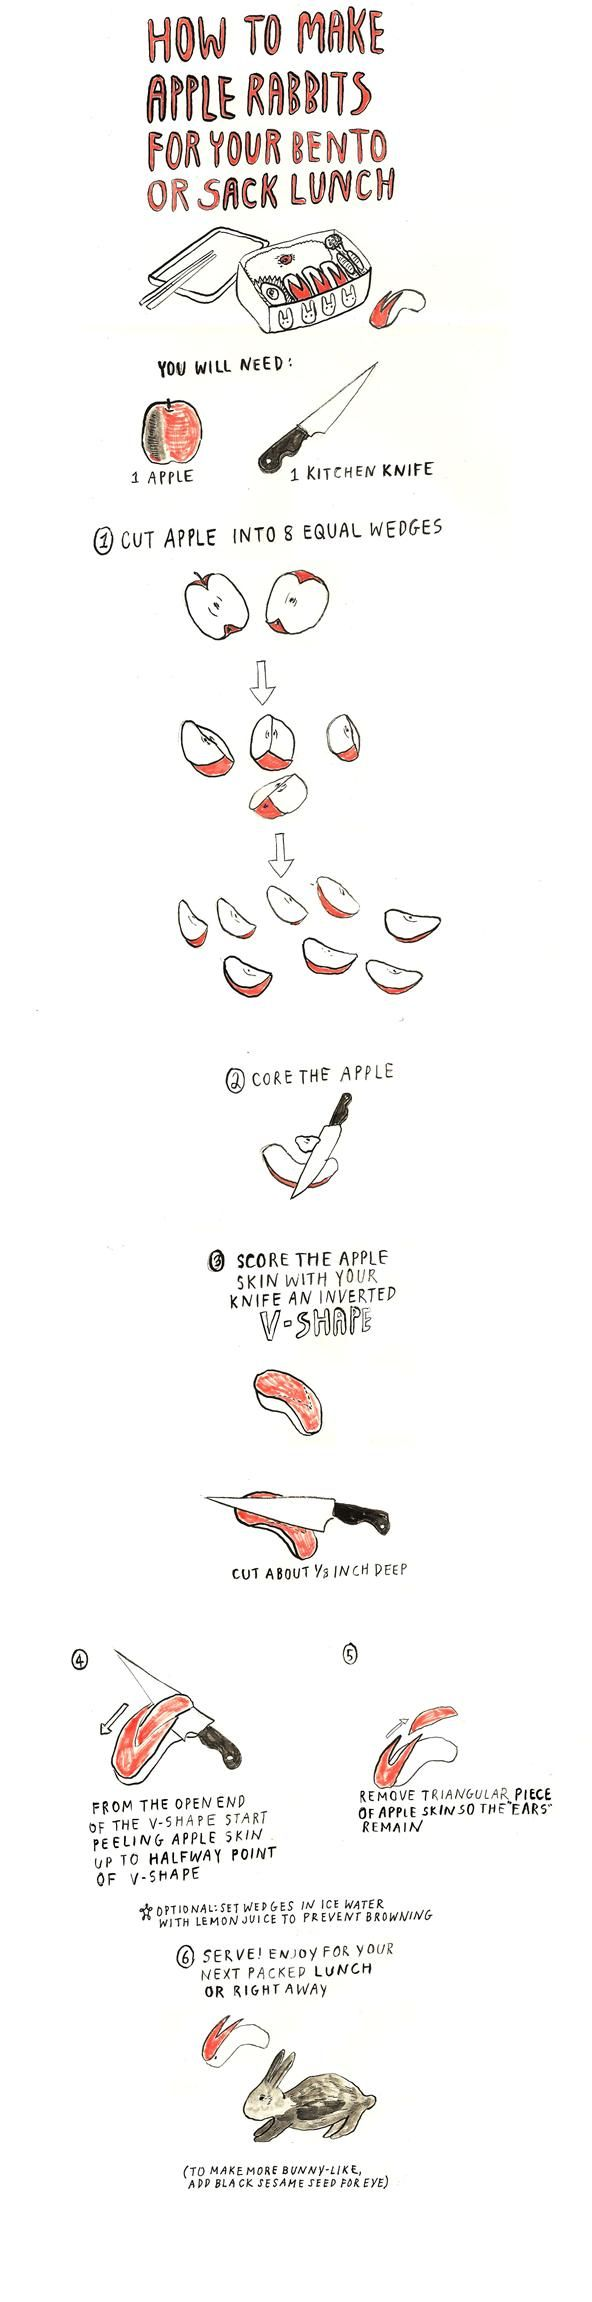 How to Make Apple Rabbits by thesecretyumiverse